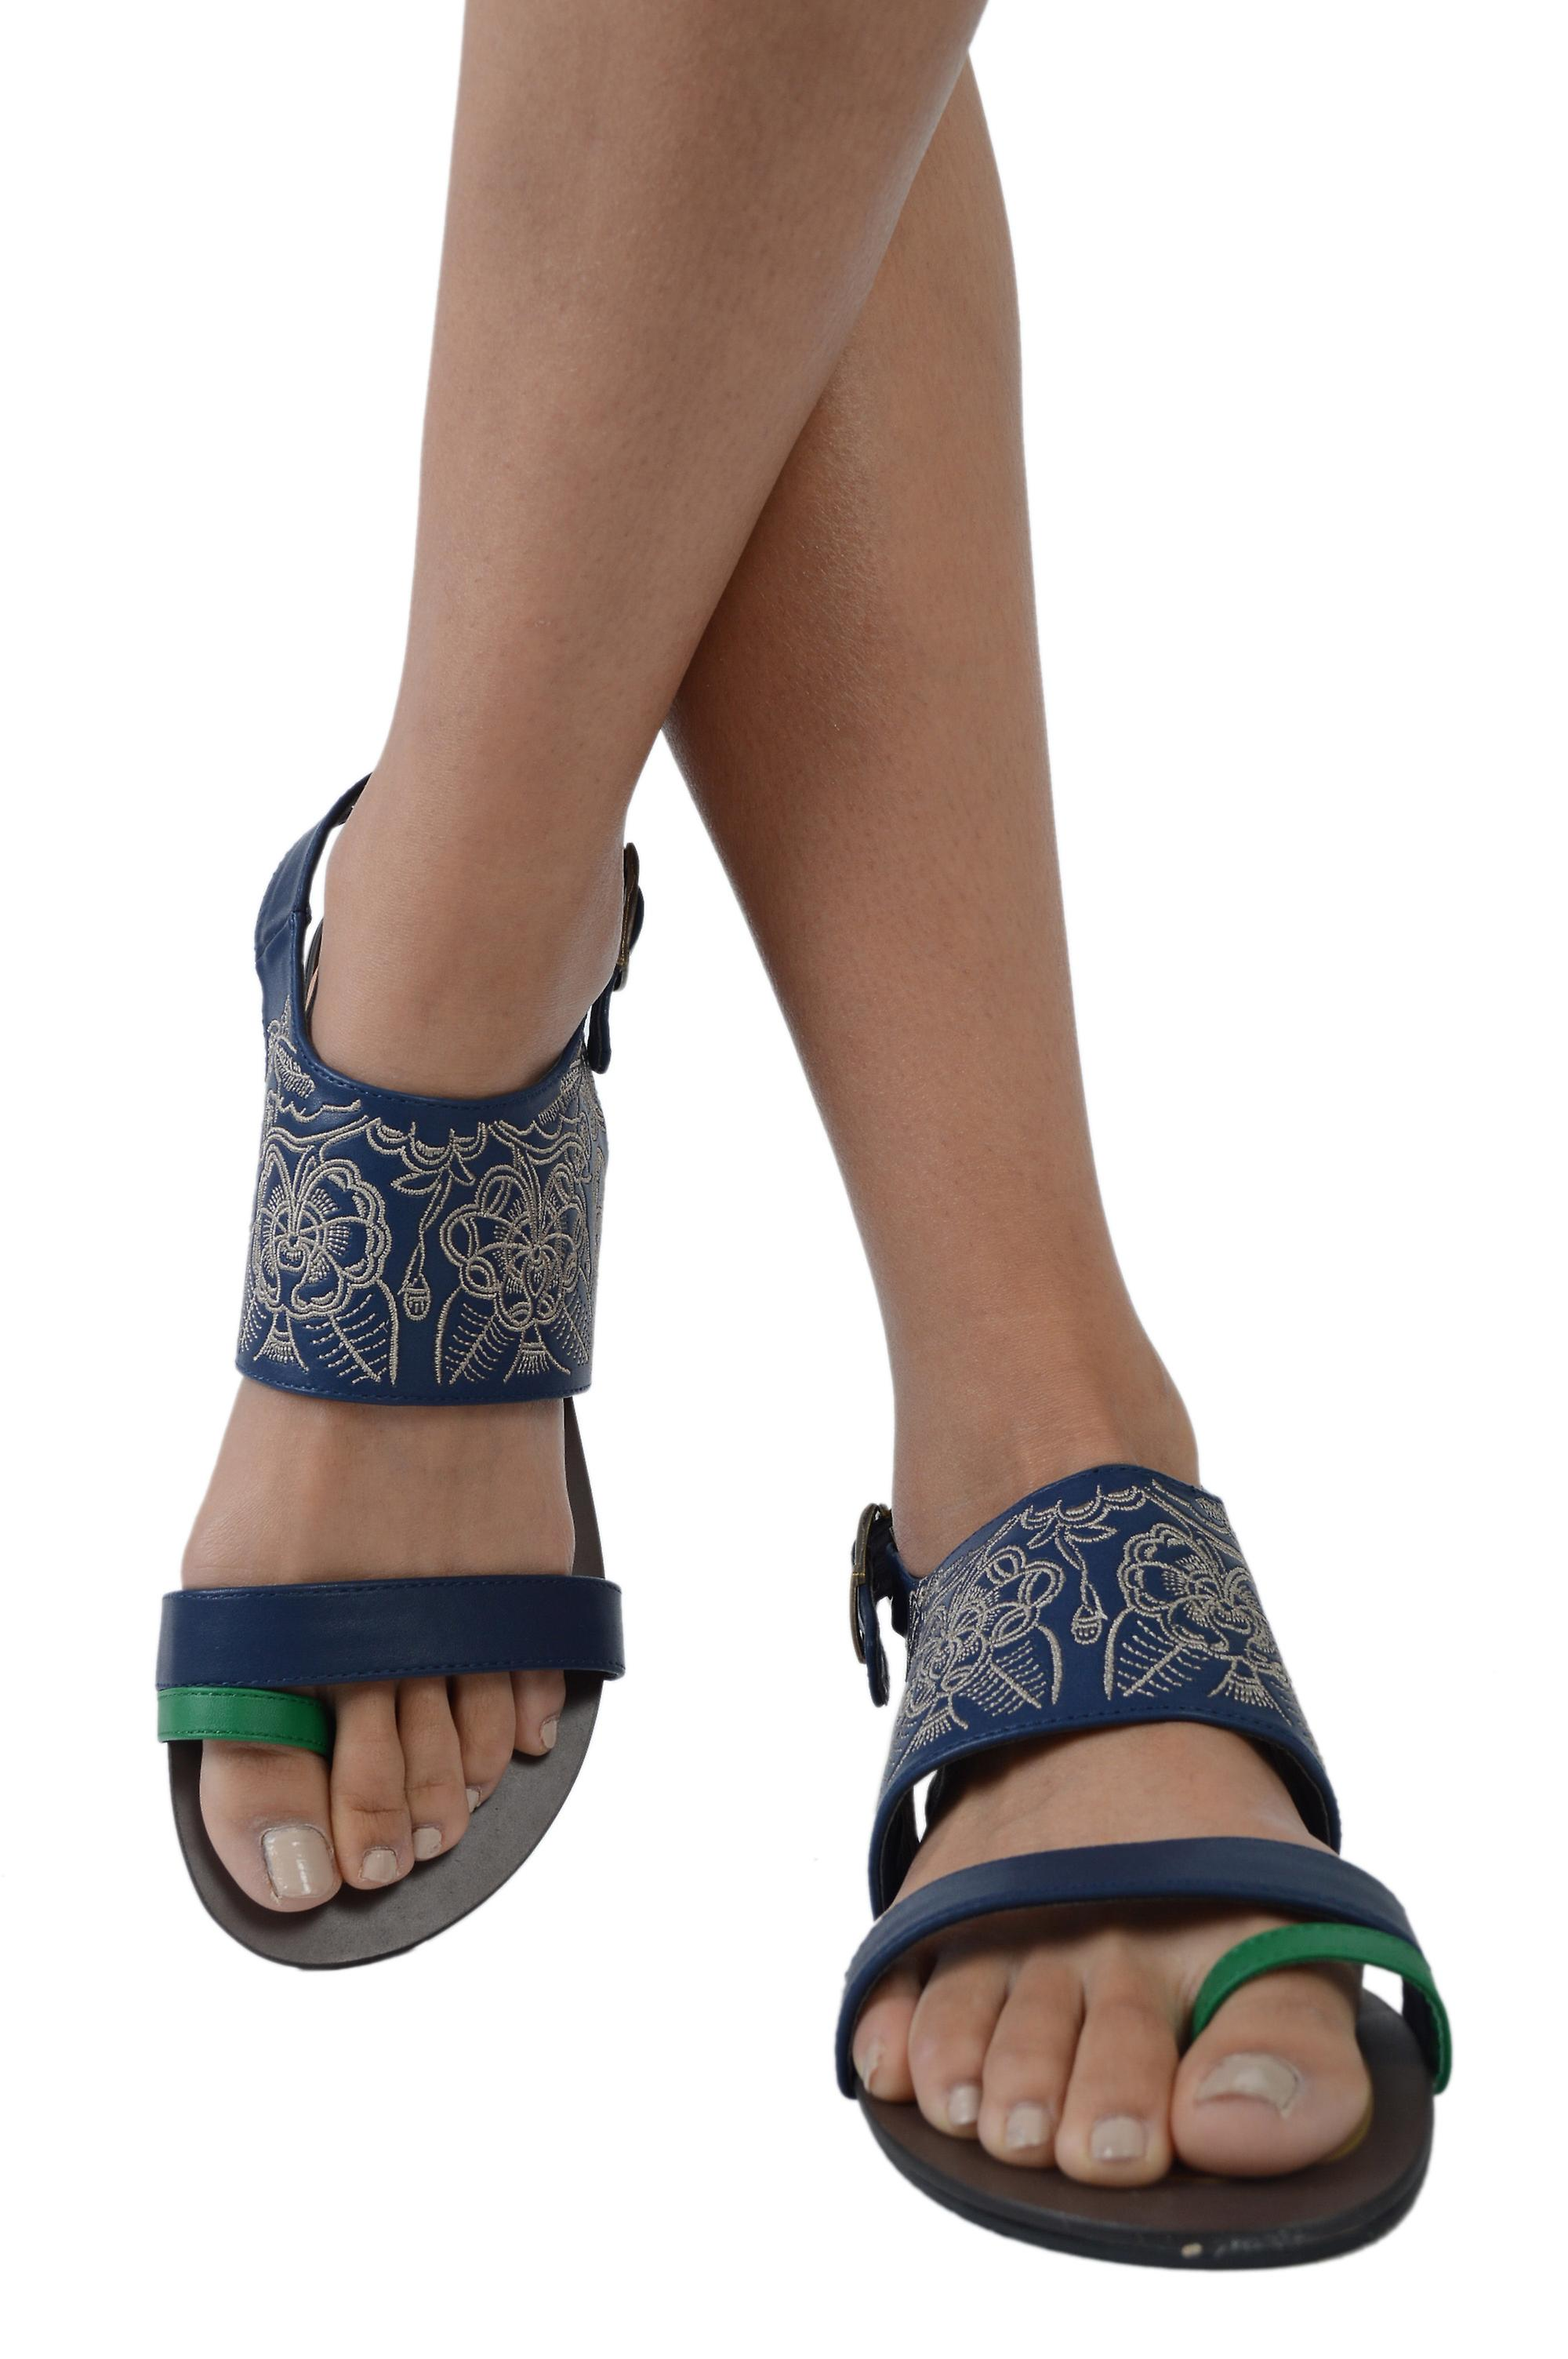 LMS Blue Leather Sandals With Stitching And Green Toe Strap